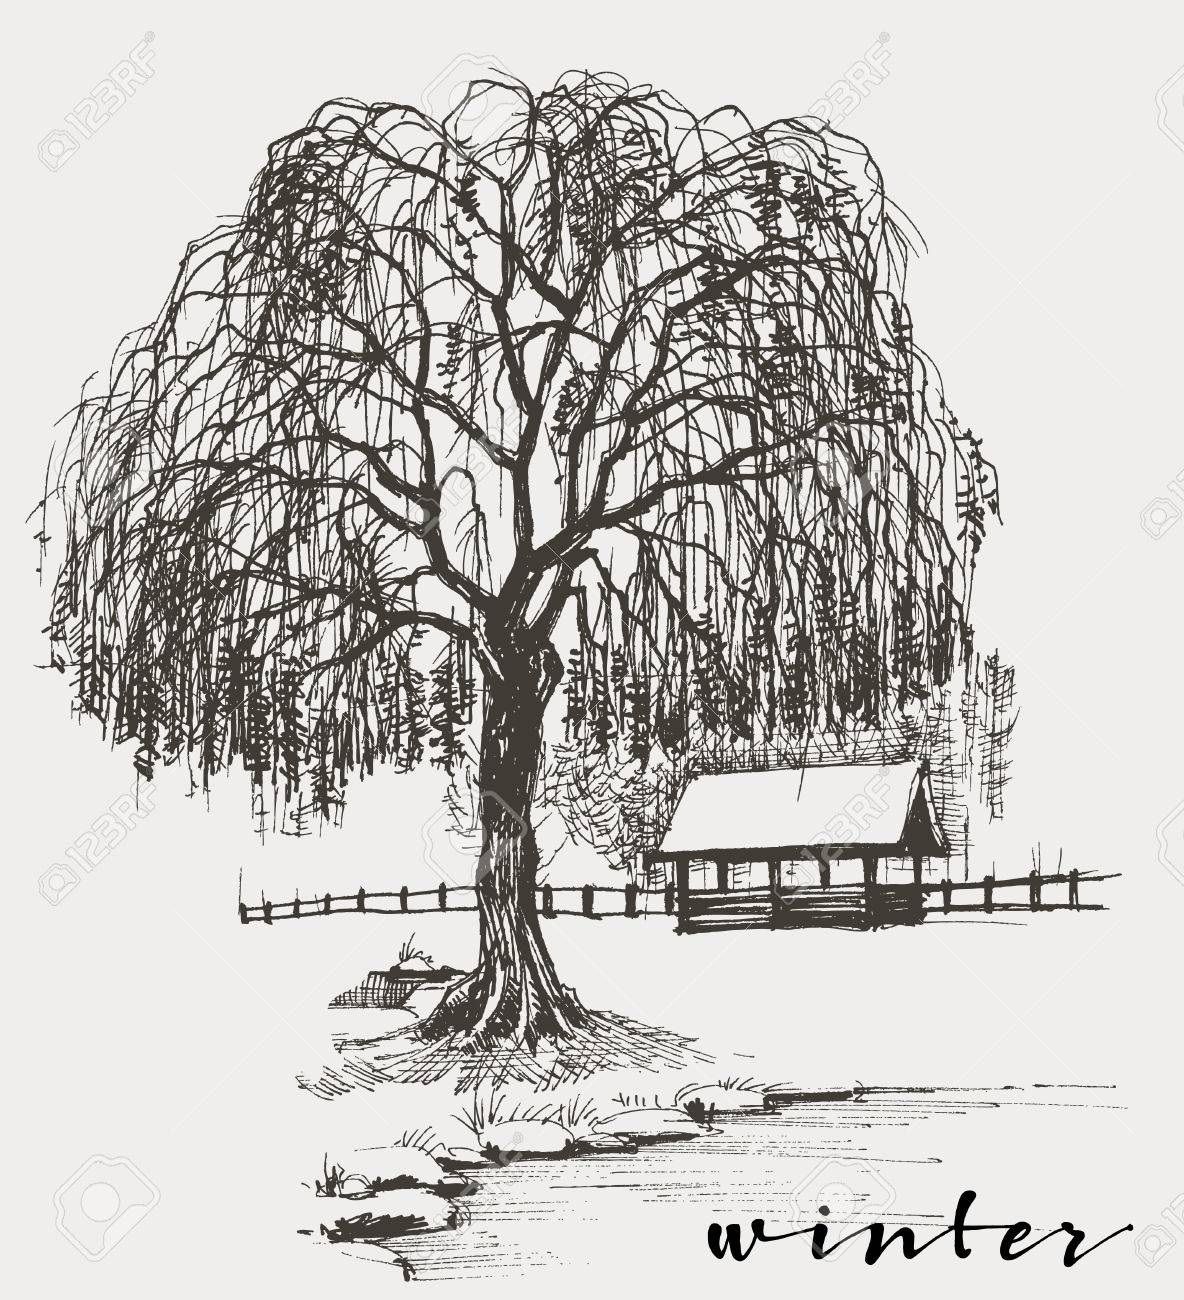 Winter sketch, willow tree - 51327202